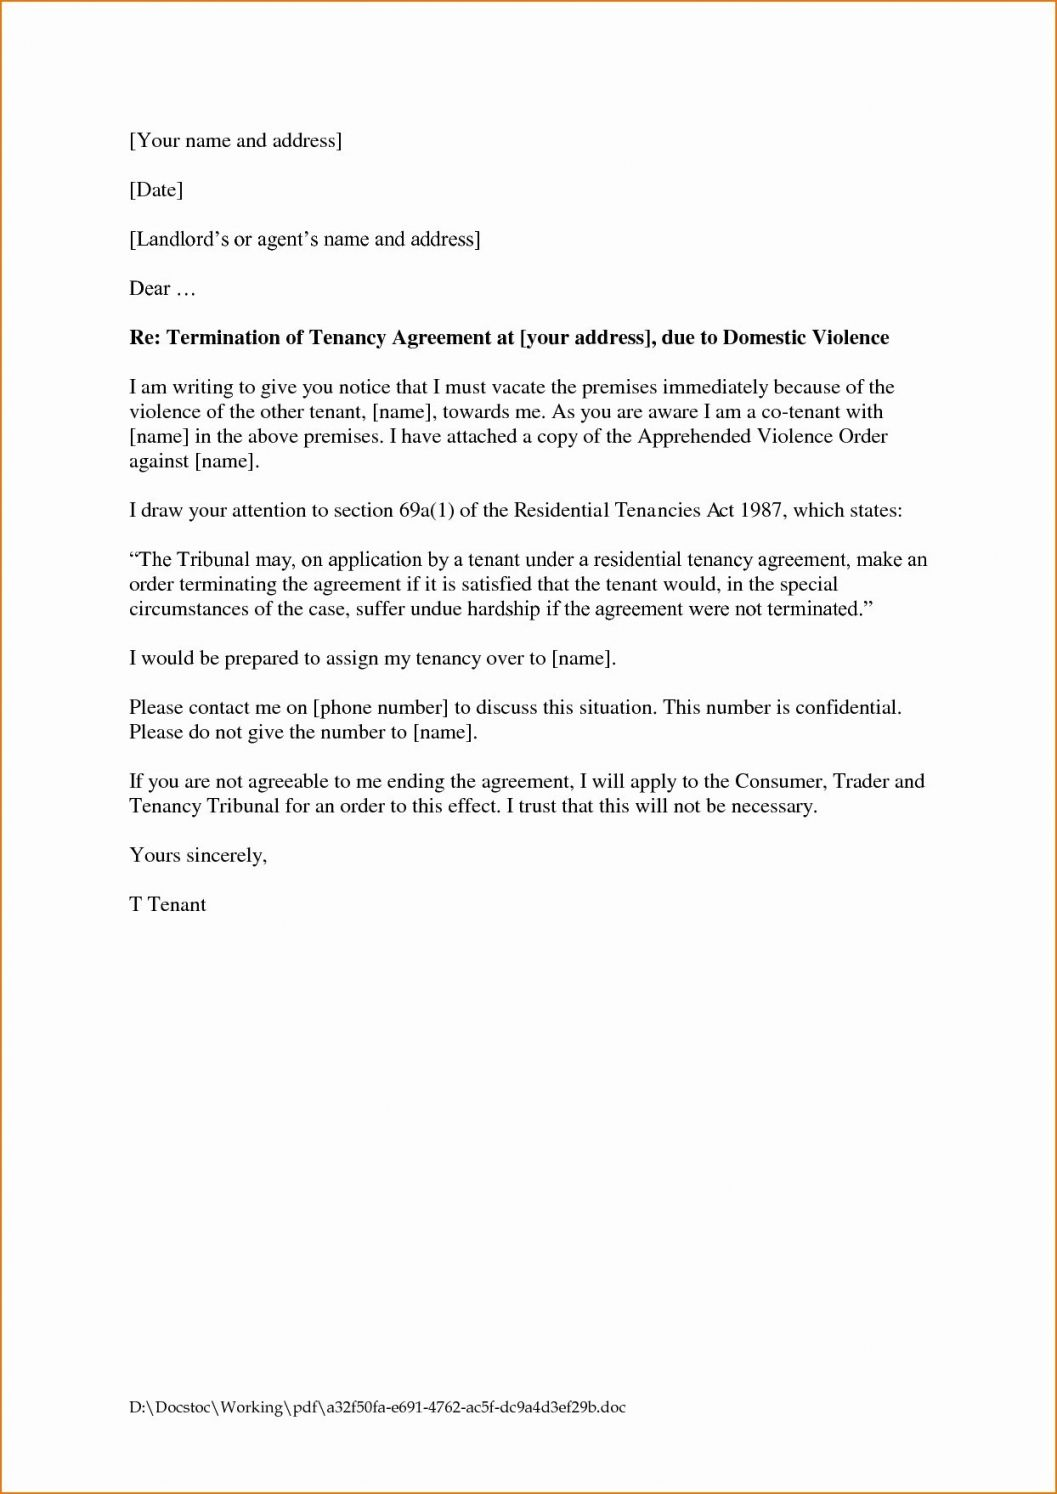 rental contract cancellation letter template in 2020 corporate lawyer resume sample hr assistant summary for basic accounting